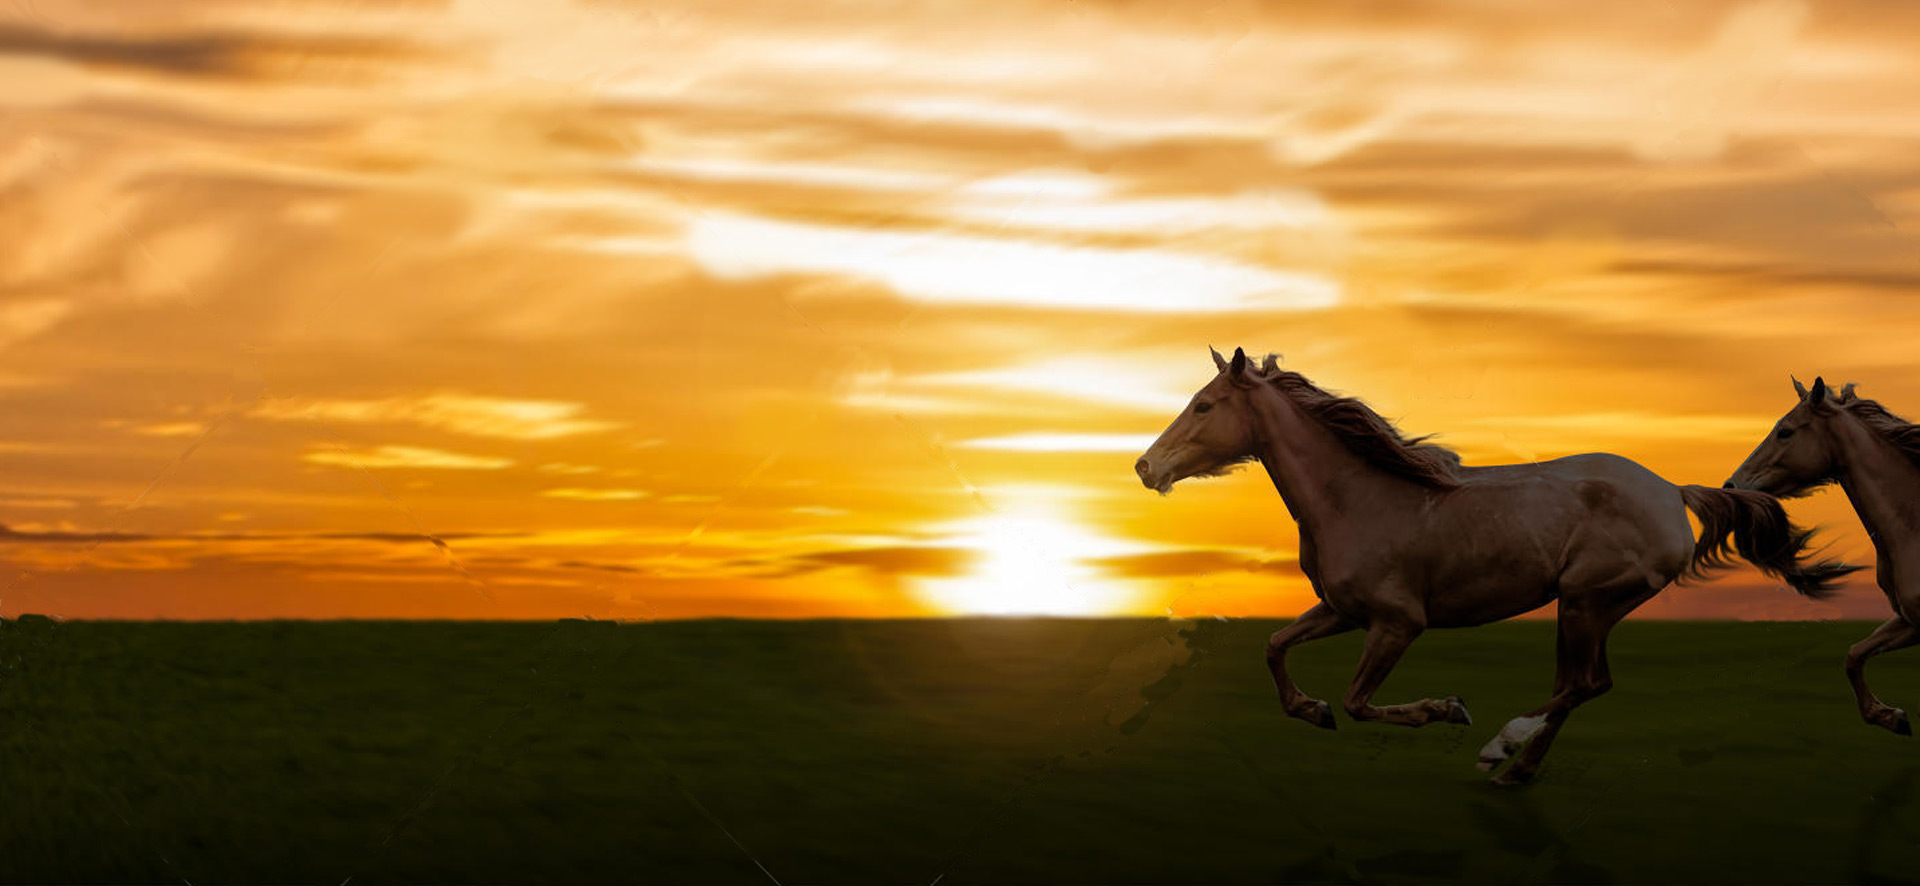 bg-sunset-horses